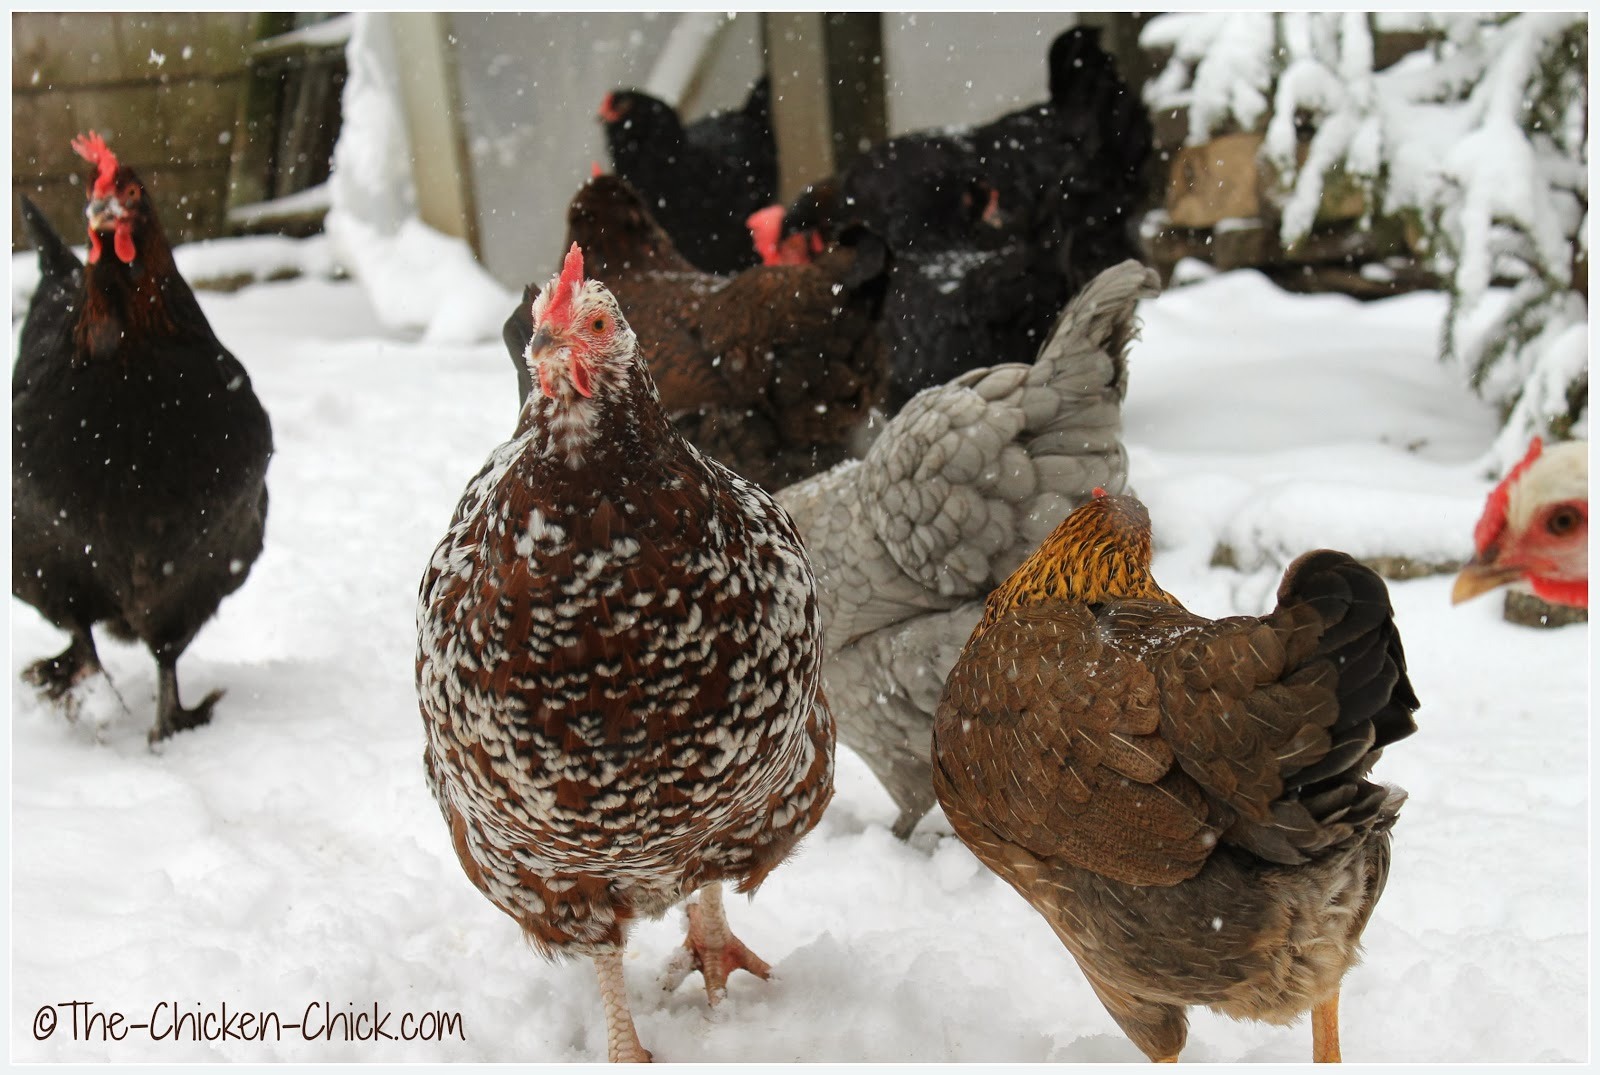 Speckled Sussex hen and chickens in snow